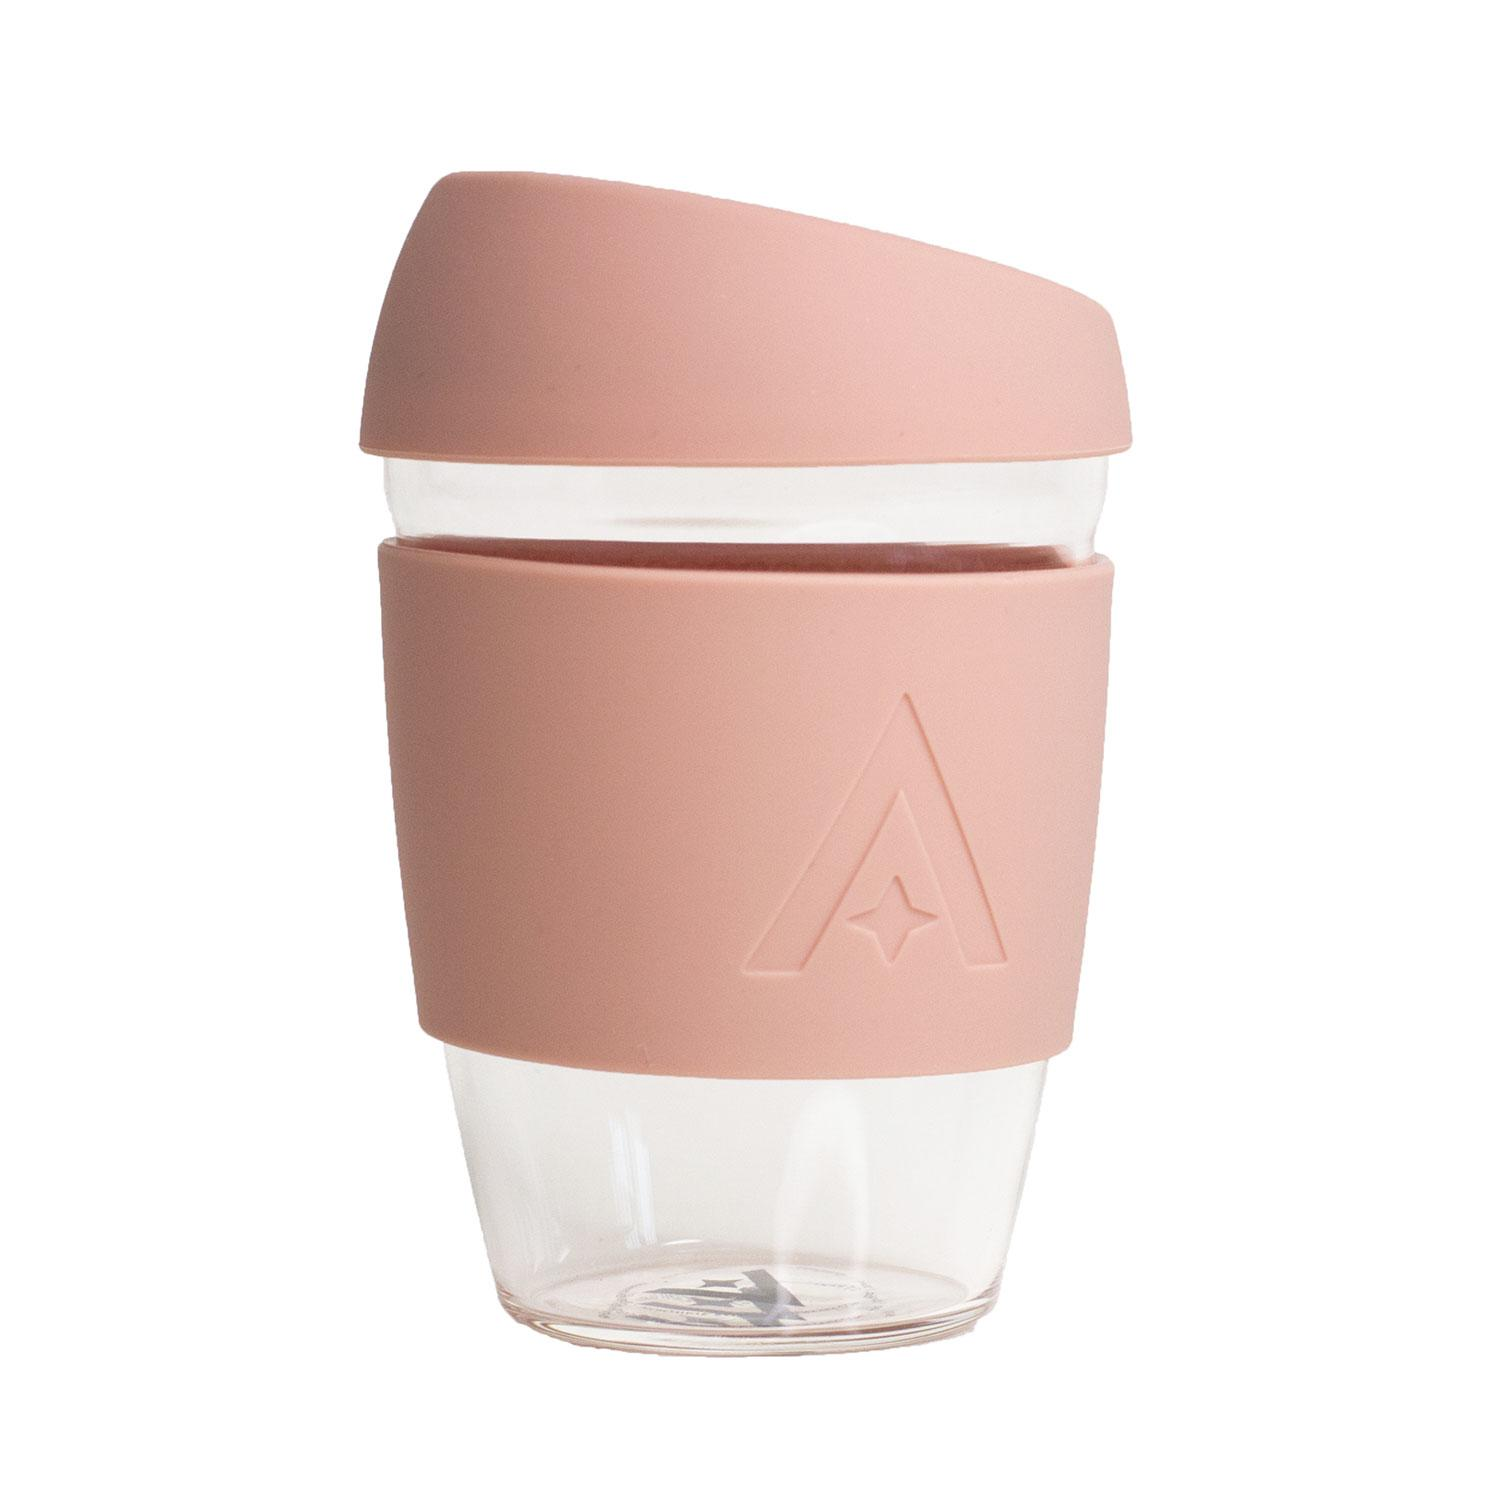 Uberstar Reusable Glass Travel Cup - Blush Pink - Only £14.99